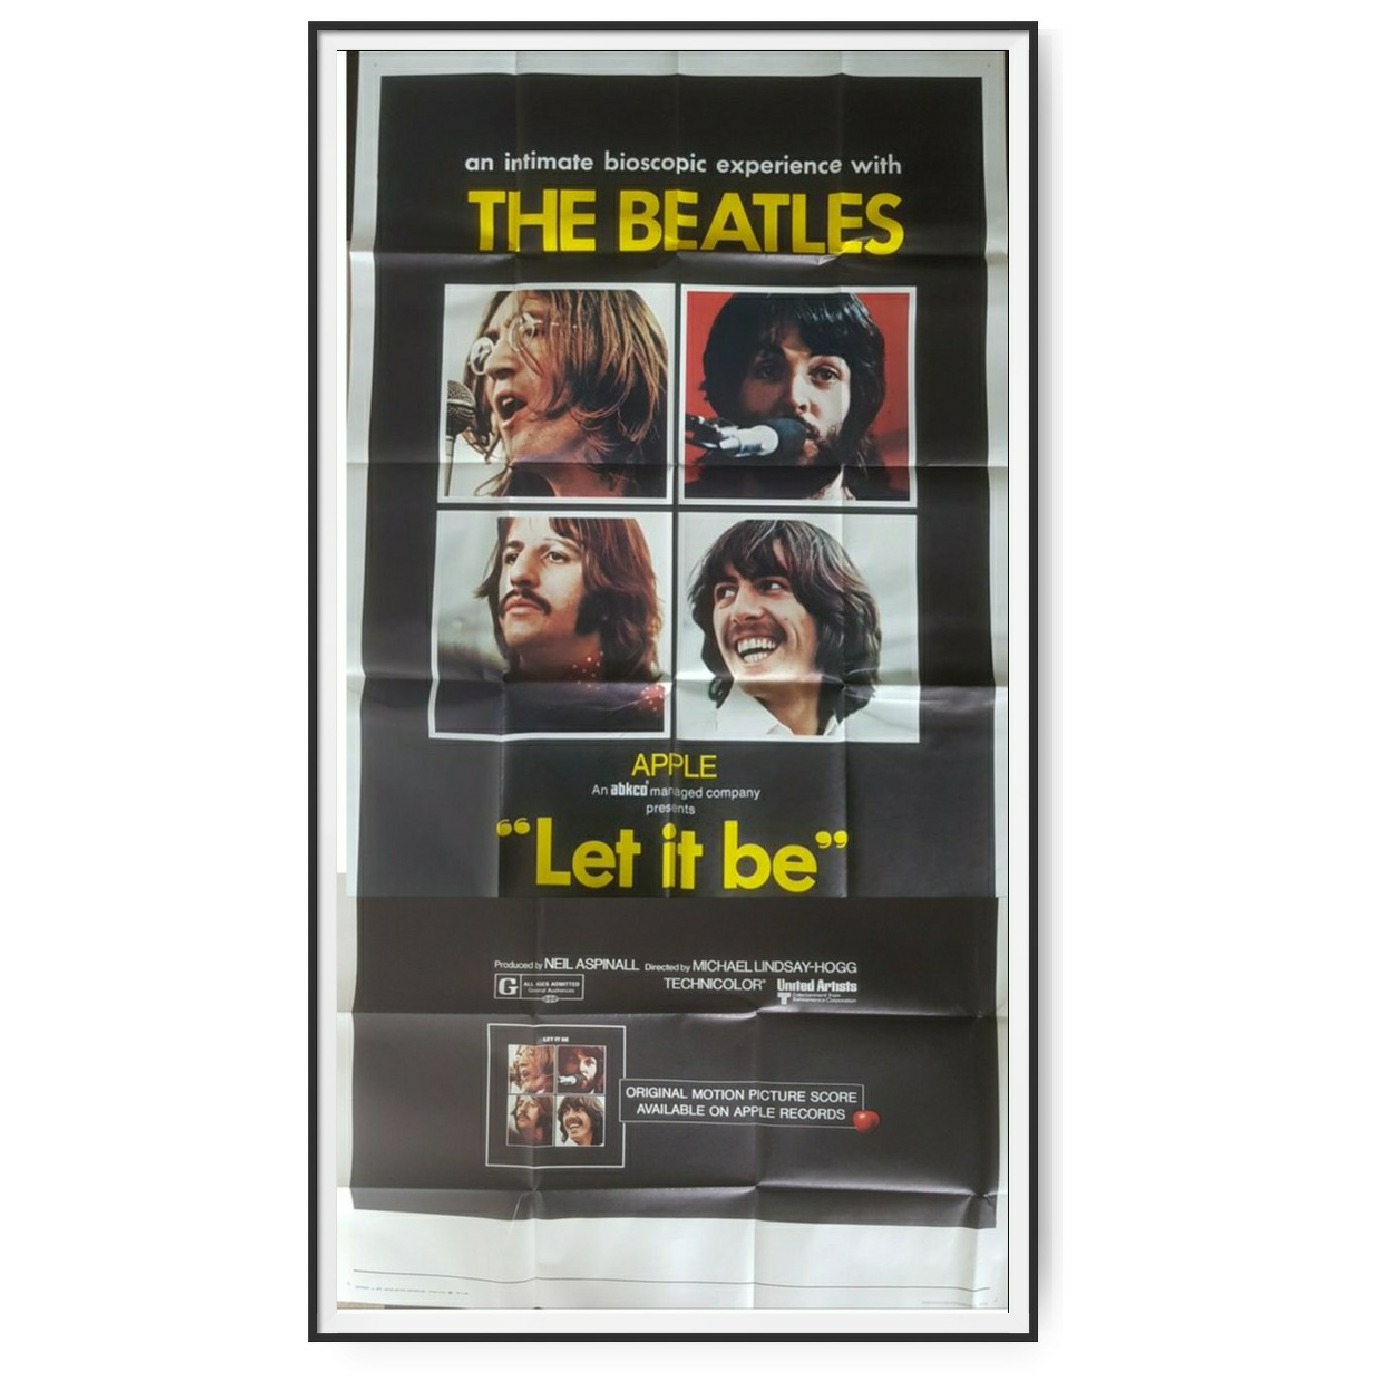 This cinema poster for the film Let It Be shows all 4 members of The Beatles.